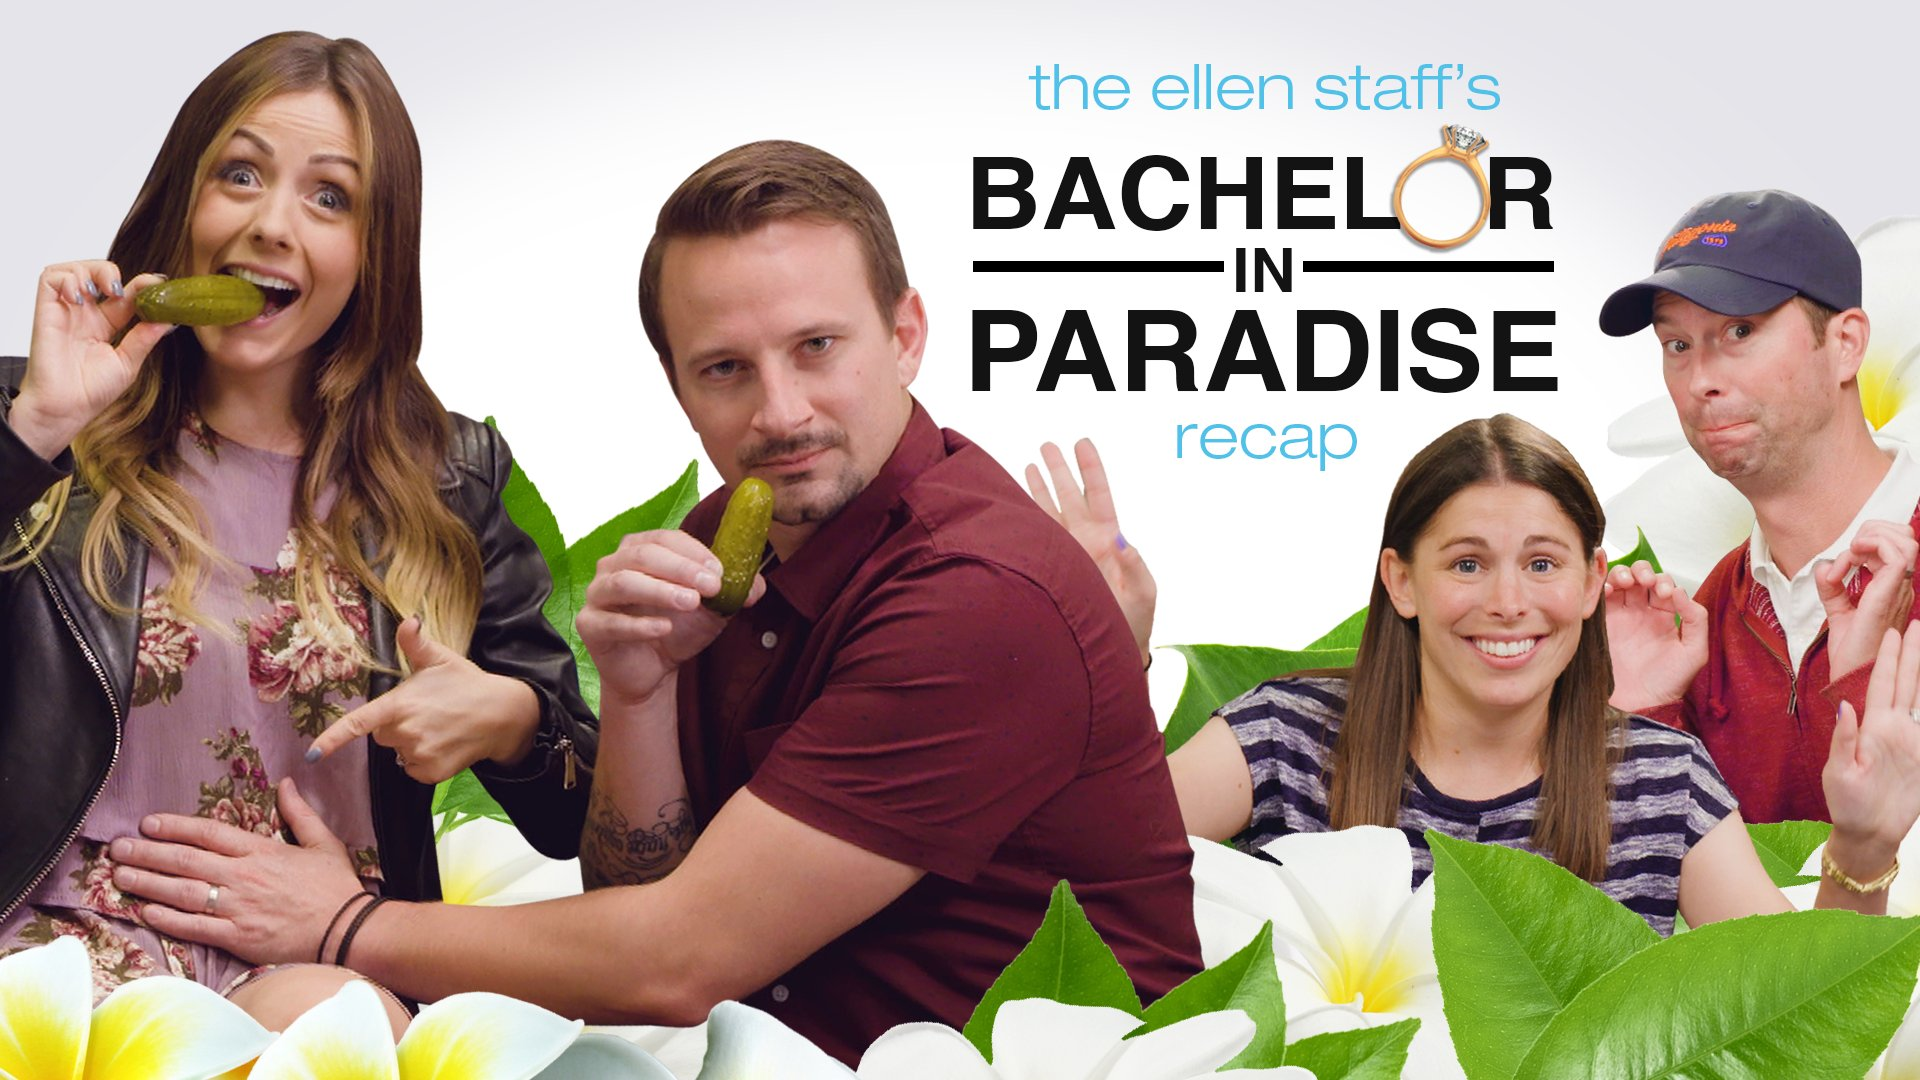 #BachelorInParadise fans! Carly and Evan are in Tracy's cubicle for my staff recap show! Oh baby! https://t.co/VP2c7xs8Sc